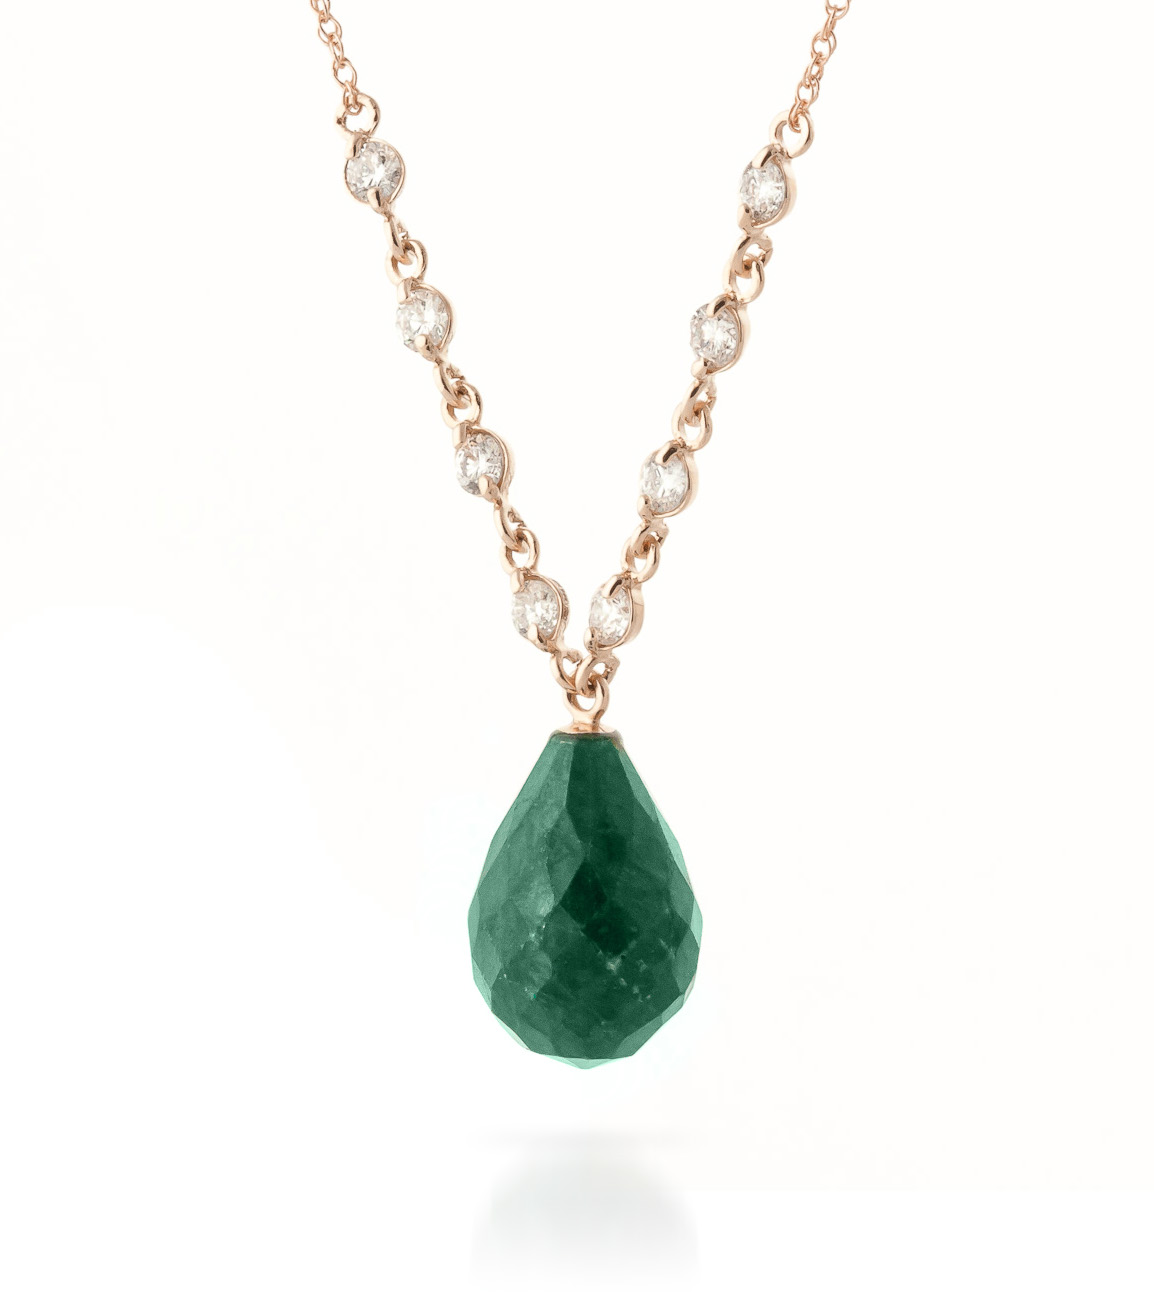 Emerald and Diamond Pendant Necklace 14.8ct in 9ct Rose Gold